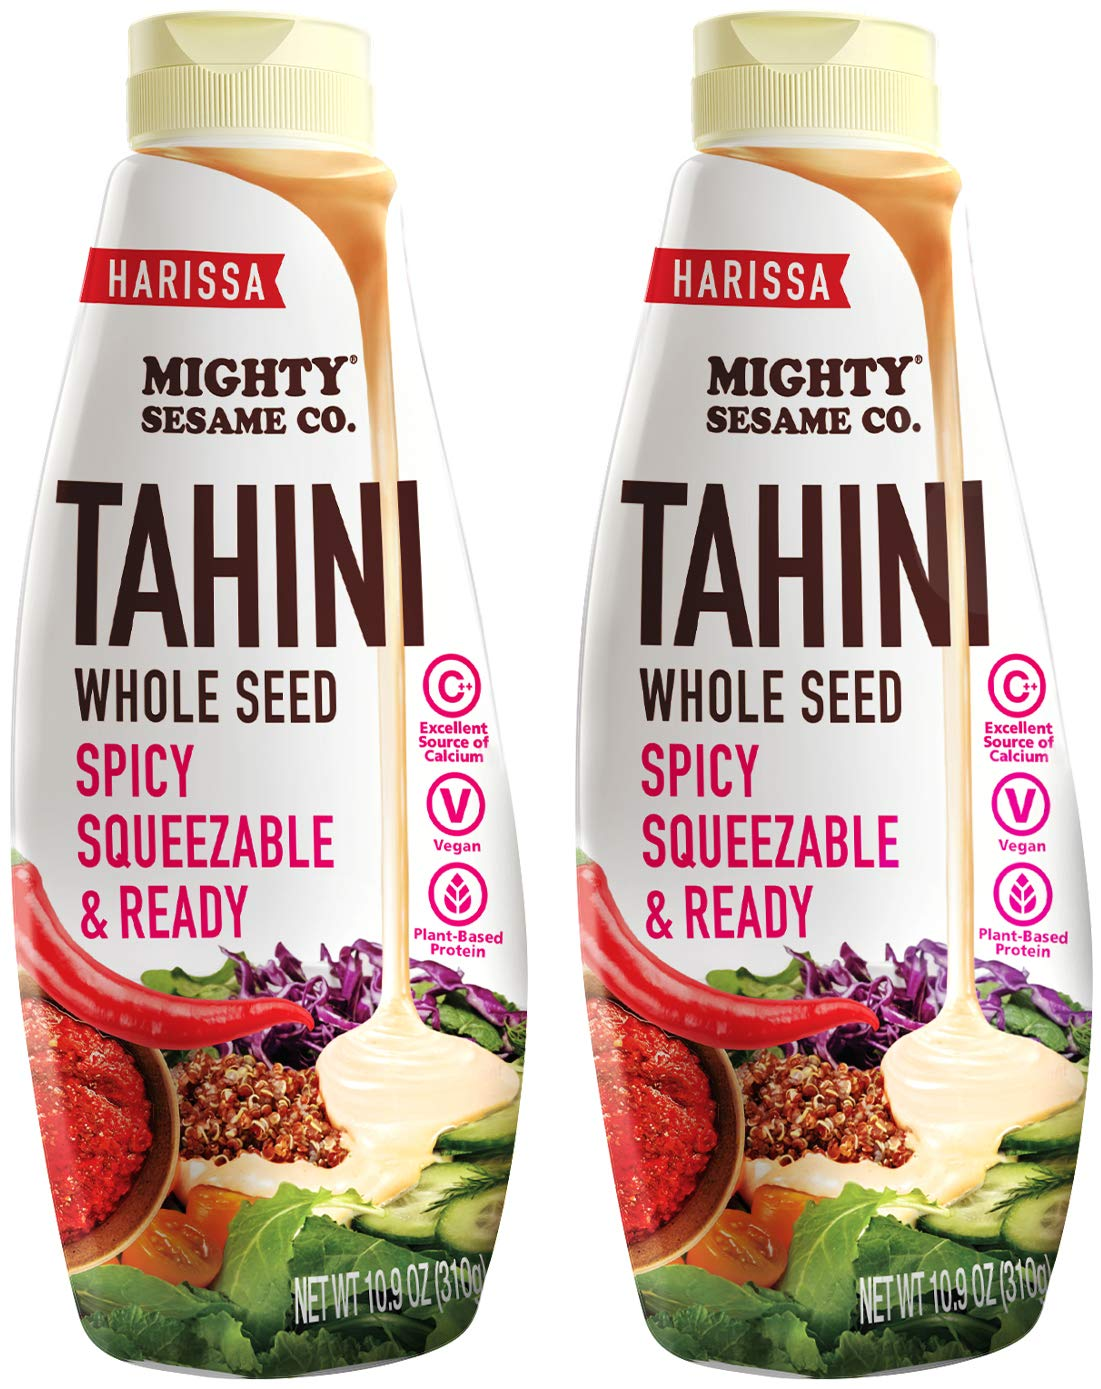 Mighty Sesame Co. Harissa Tahini Ready Chili Squeezable Mesa Free shipping anywhere in the nation Mall Spicy